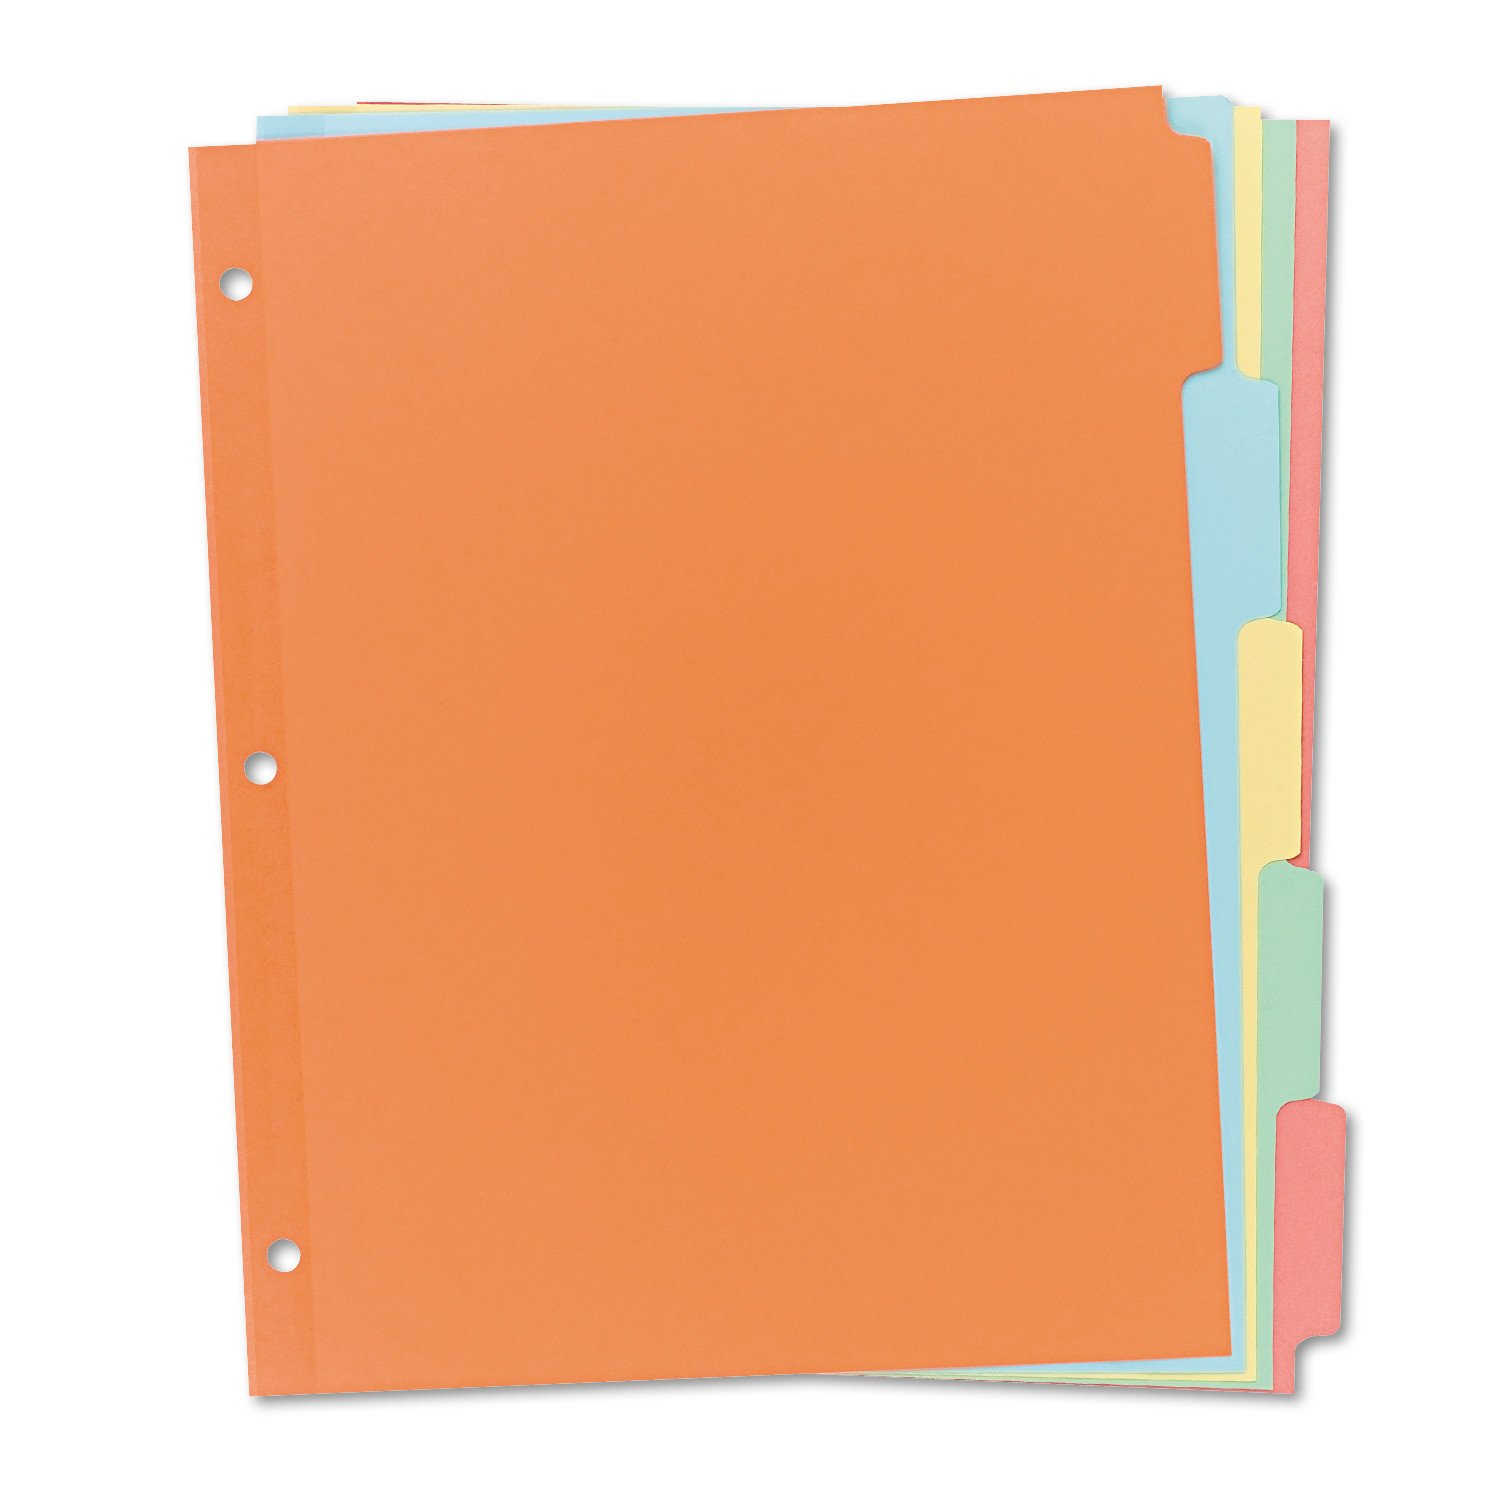 Avery 11508 Write & Erase Plain-Tab Paper Dividers, 5-Tab, Letter, Multicolor (Box of 36 Sets)